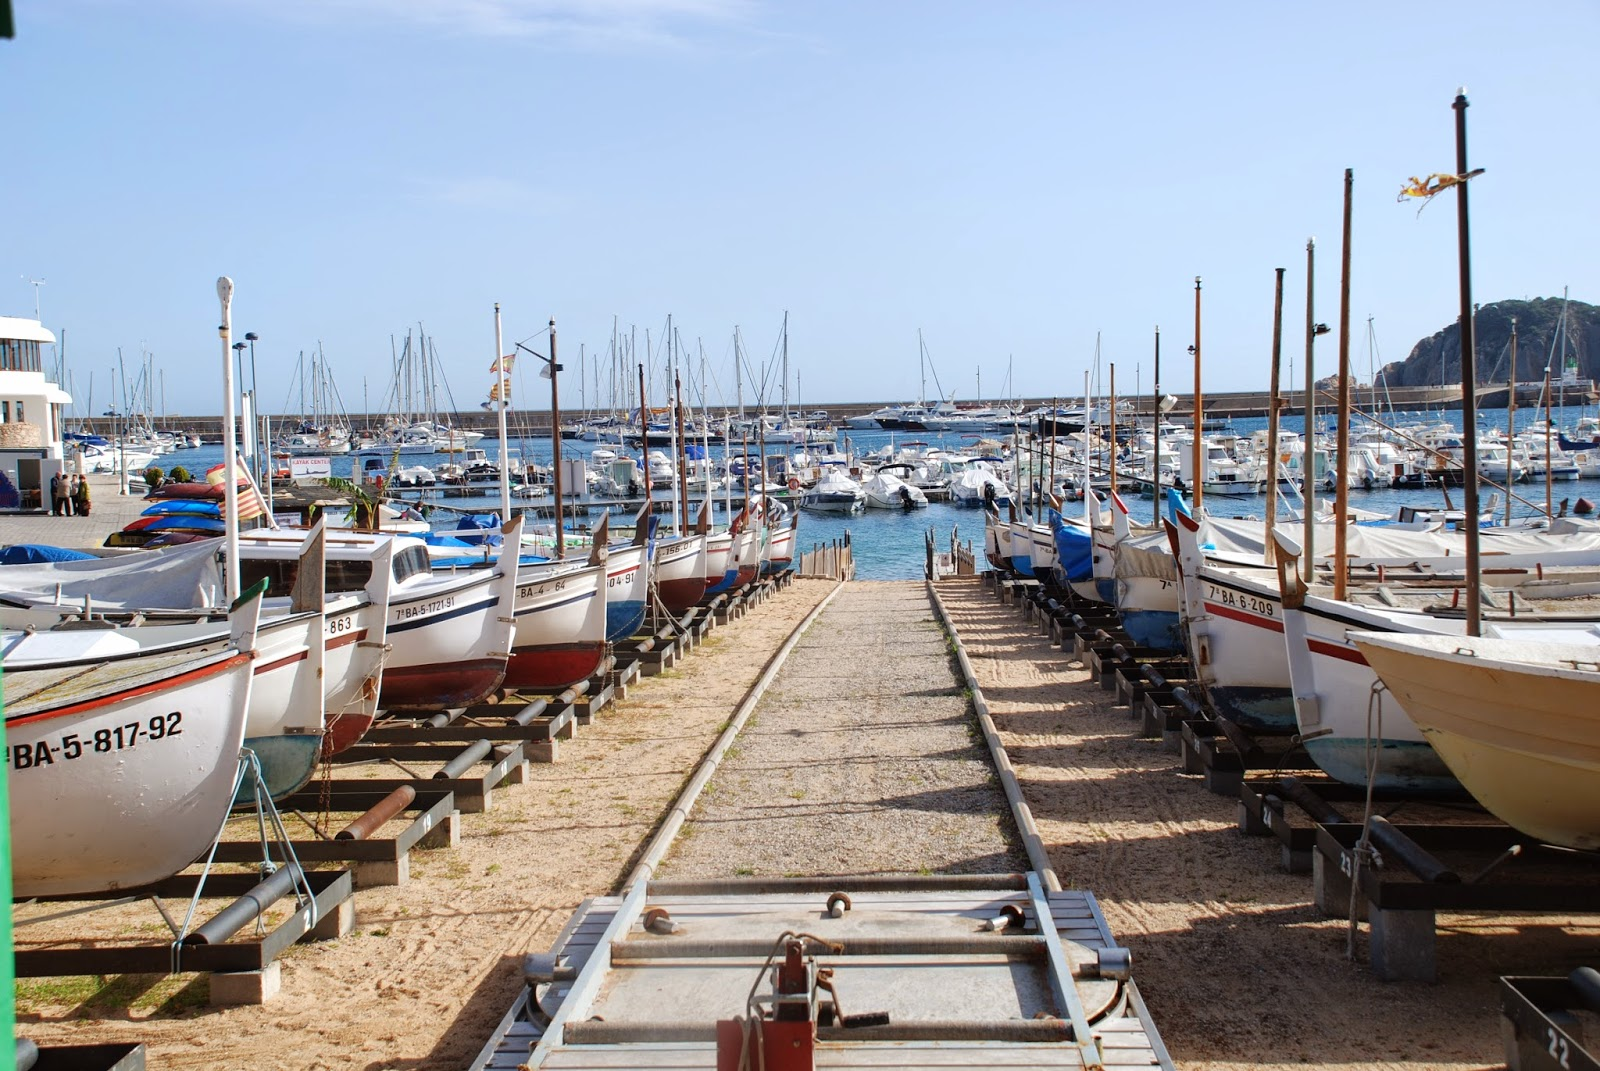 Boats on the beach, Sant Feliu de Guíxols, Catalonia